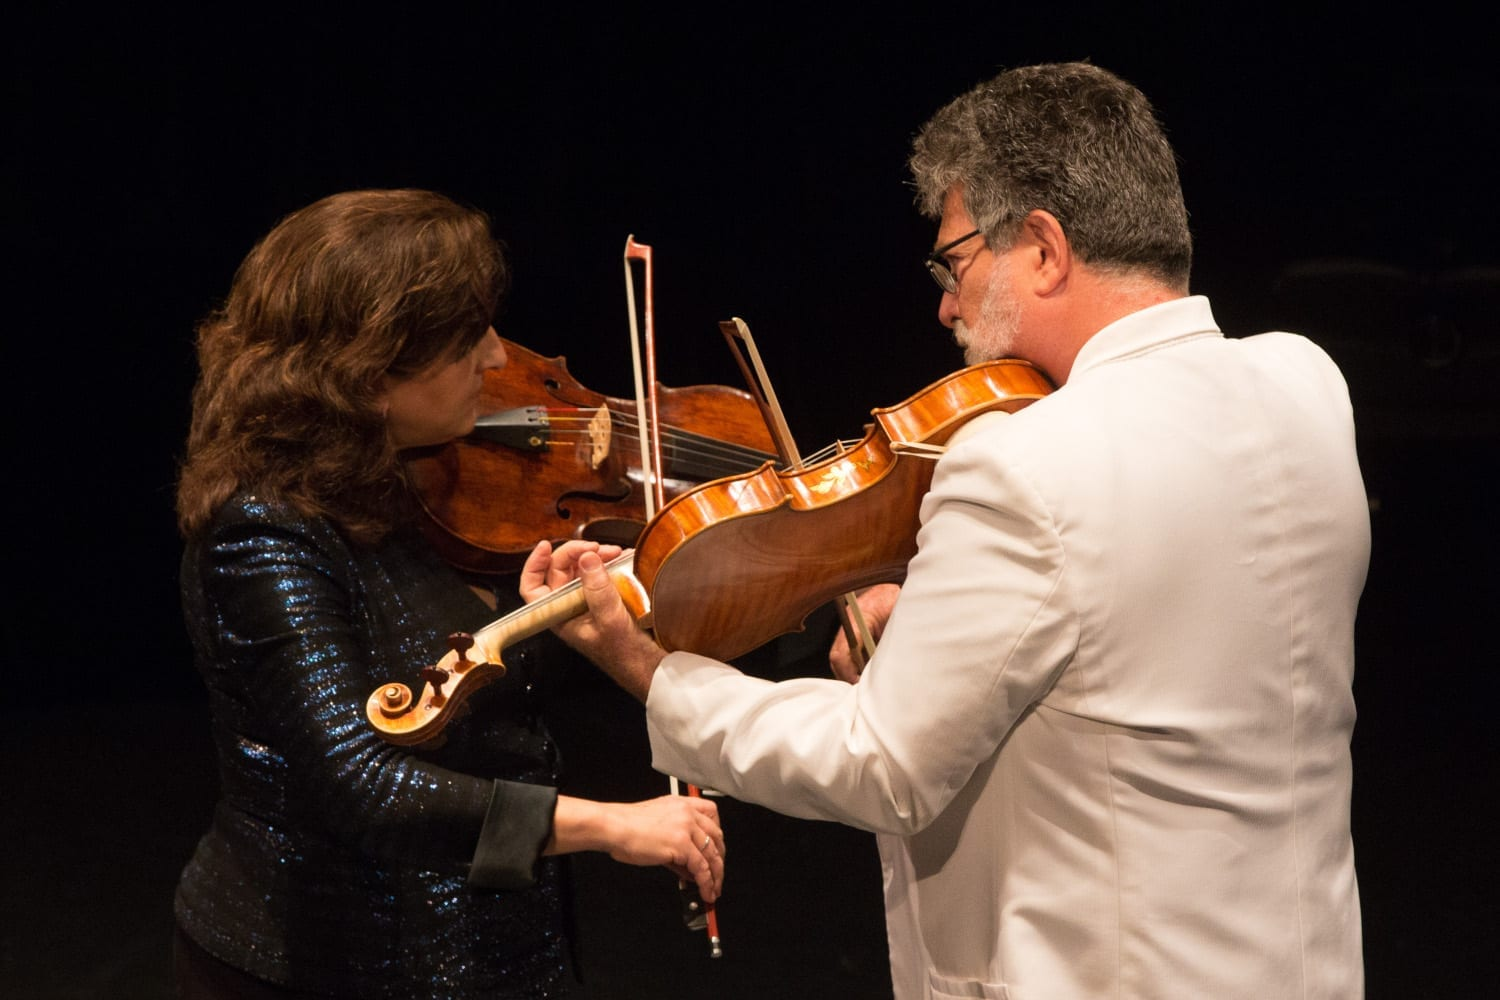 Aloysia Friedmann and Toby Appel - Photo Credit Barry Carlton